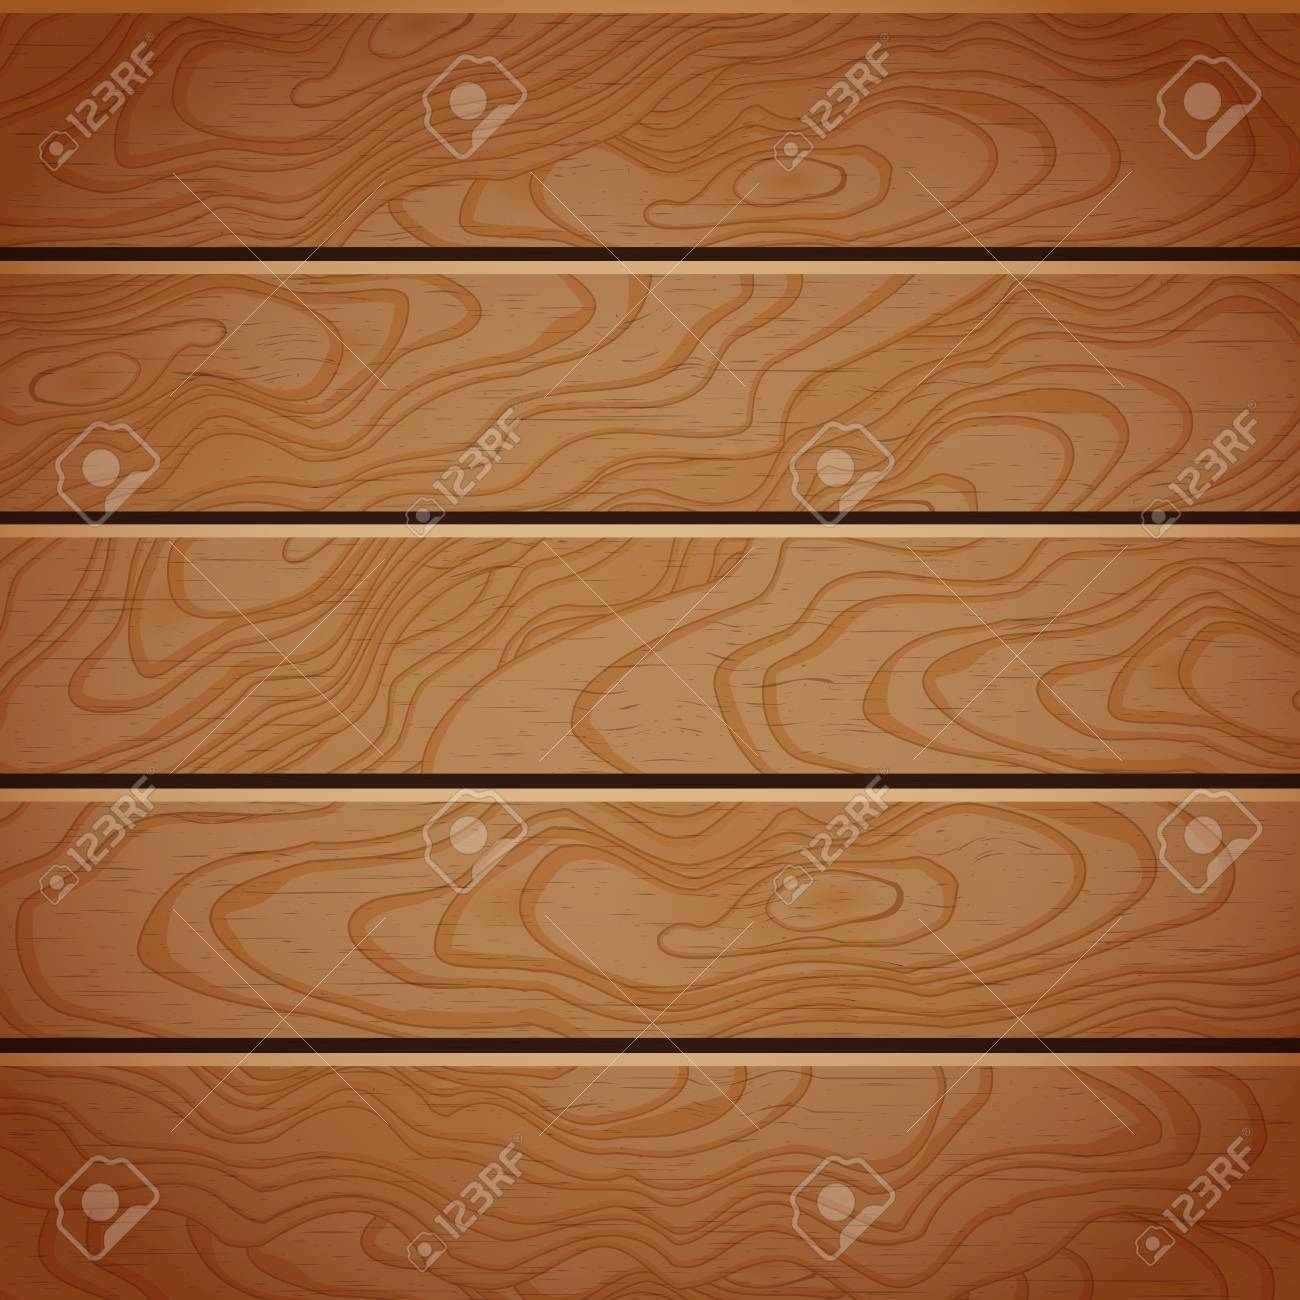 Cartoon Square Vector Background With Wooden Boards Stock